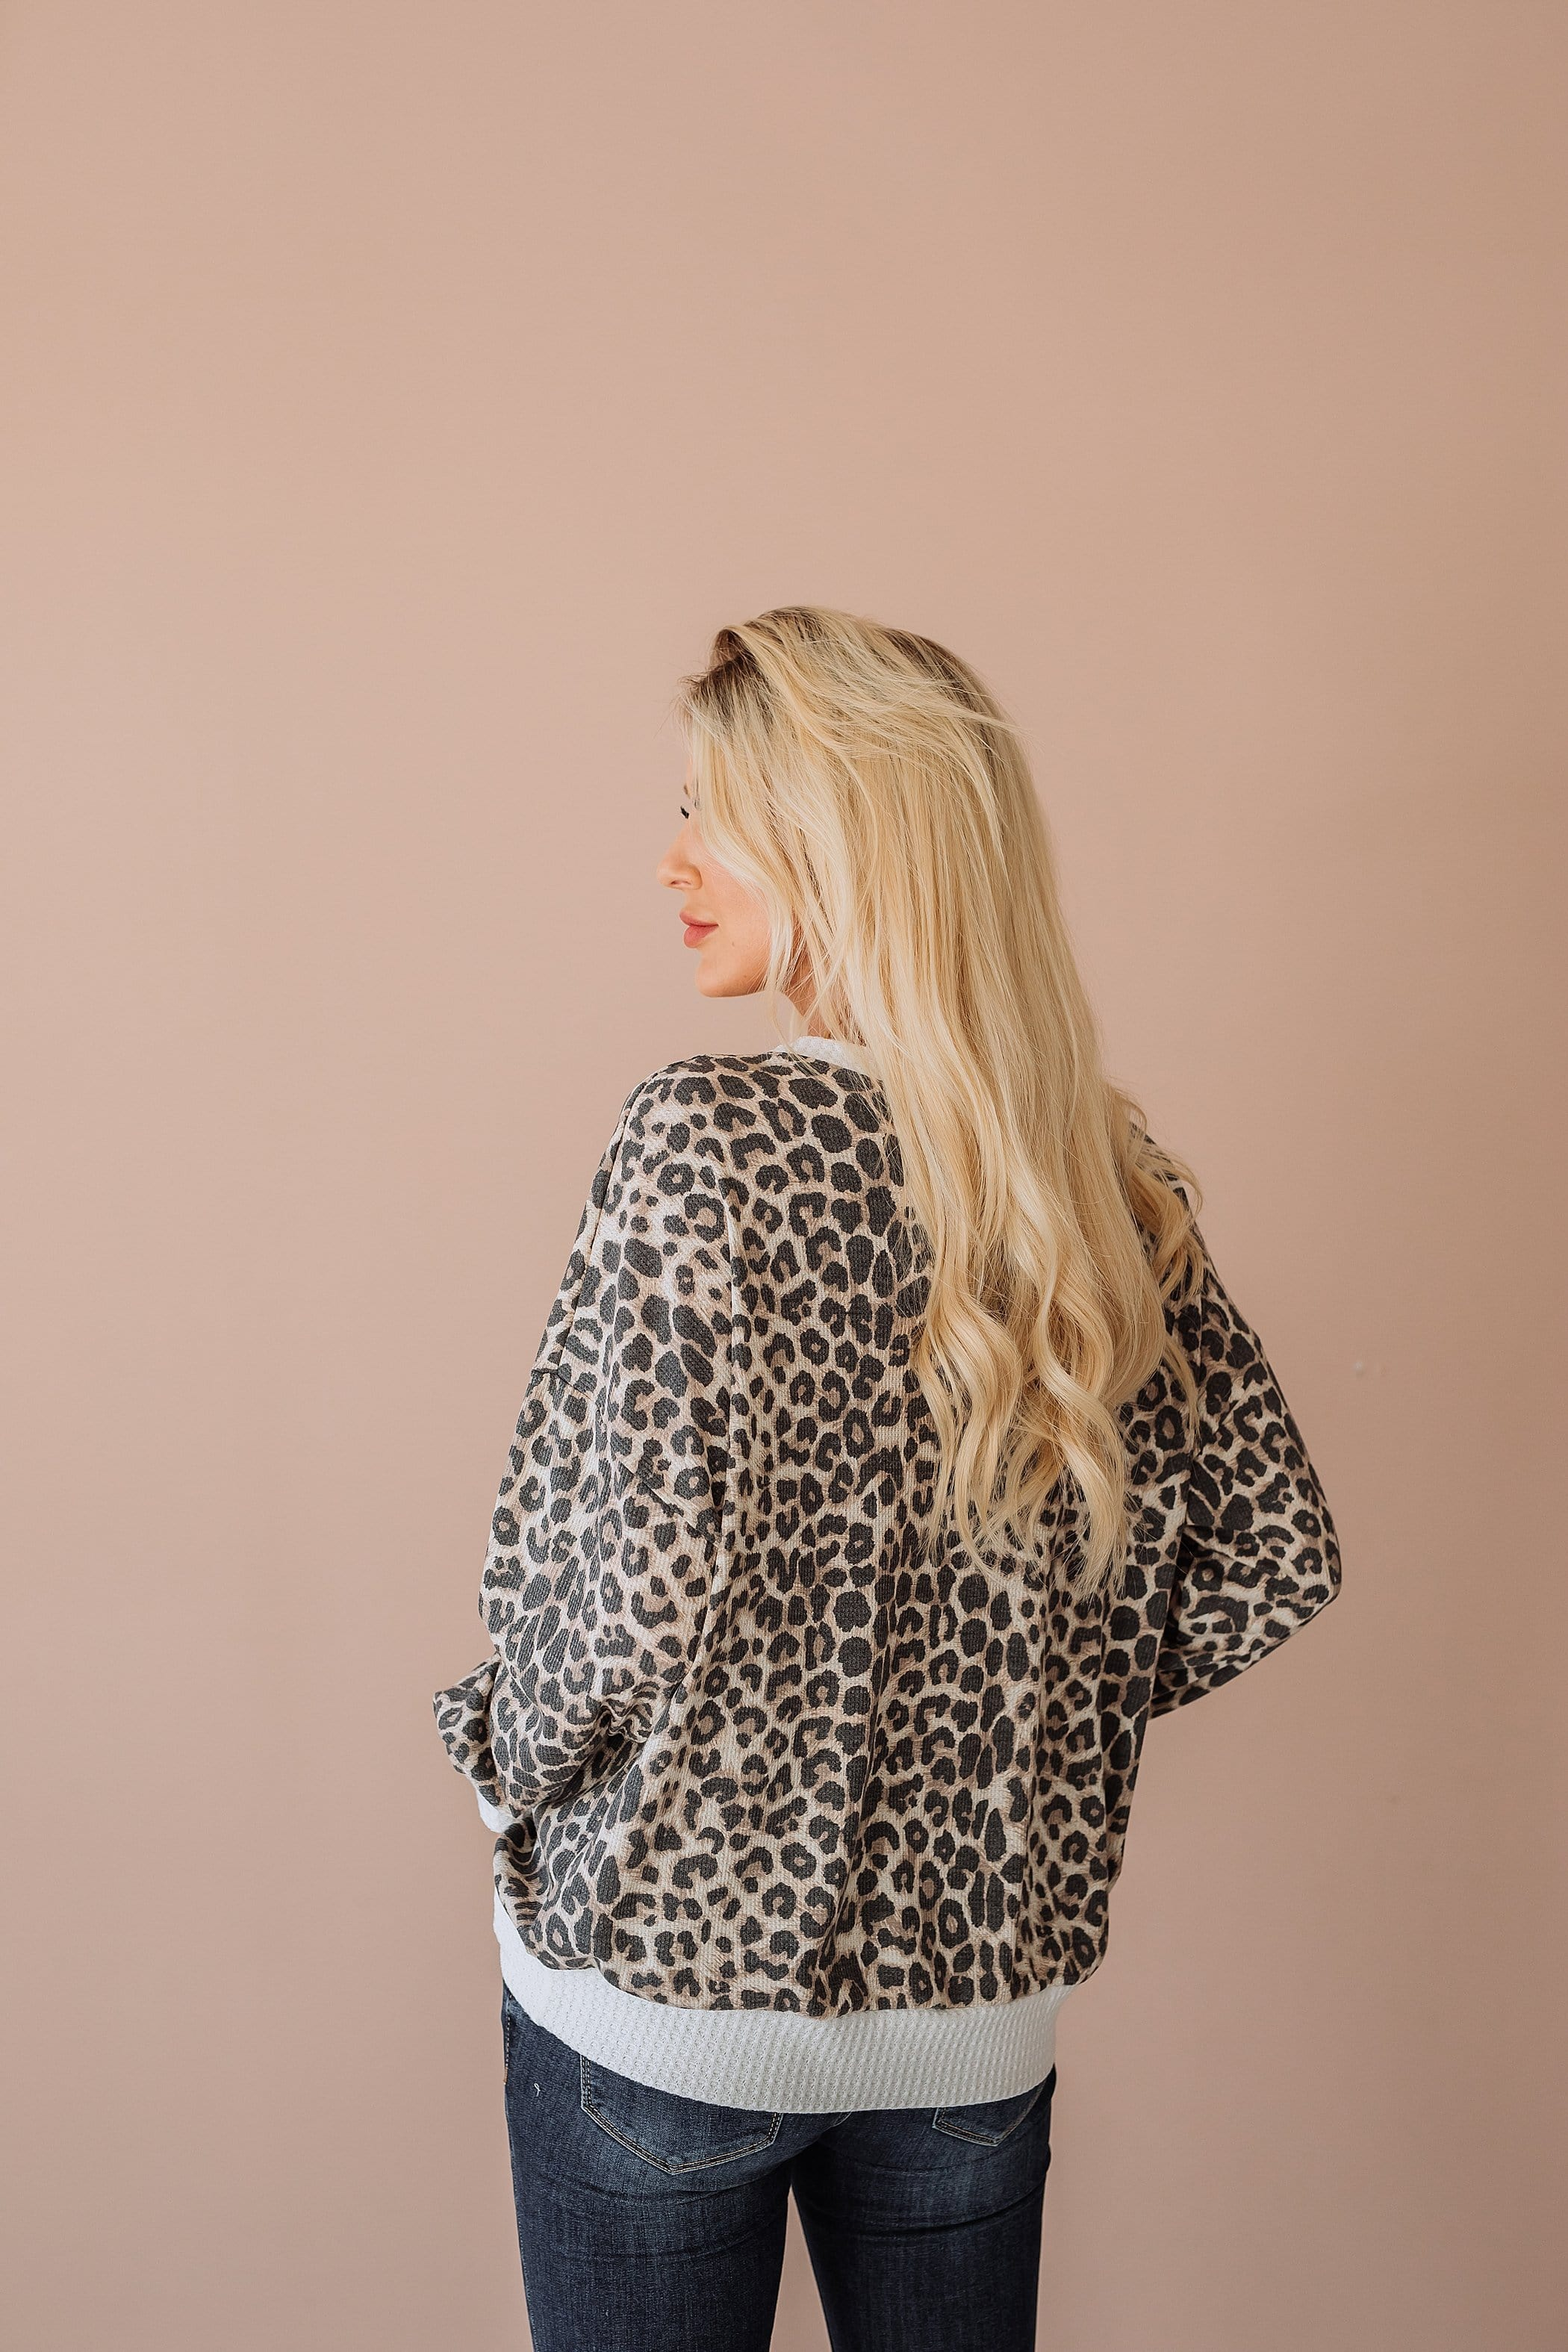 The Hilary Top in Animal Print